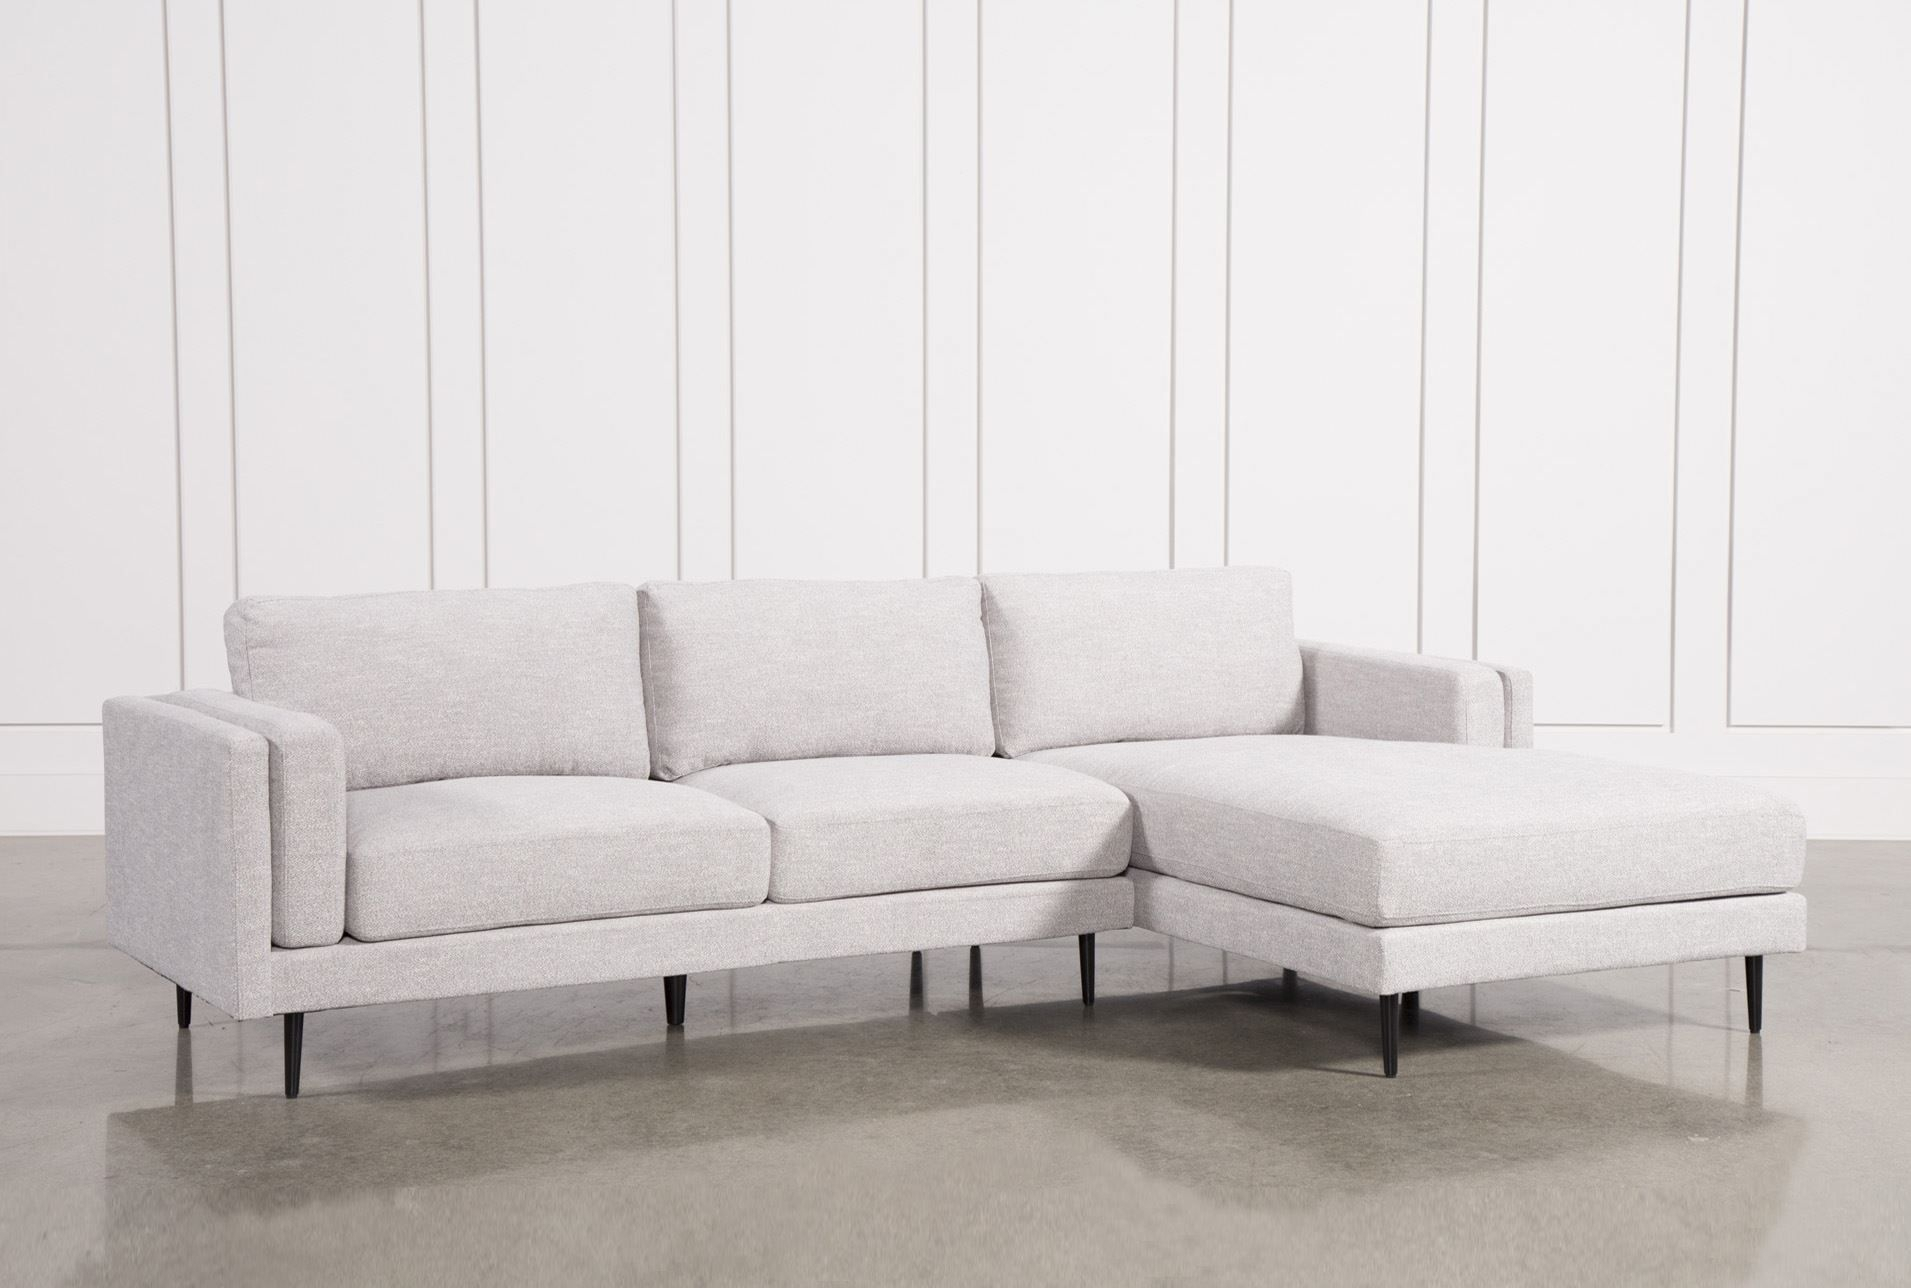 Aquarius Light Grey 2 Piece Sectional W/raf Chaise | قطع اثاث مميزة intended for Lucy Grey 2 Piece Sleeper Sectionals With Laf Chaise (Image 4 of 30)